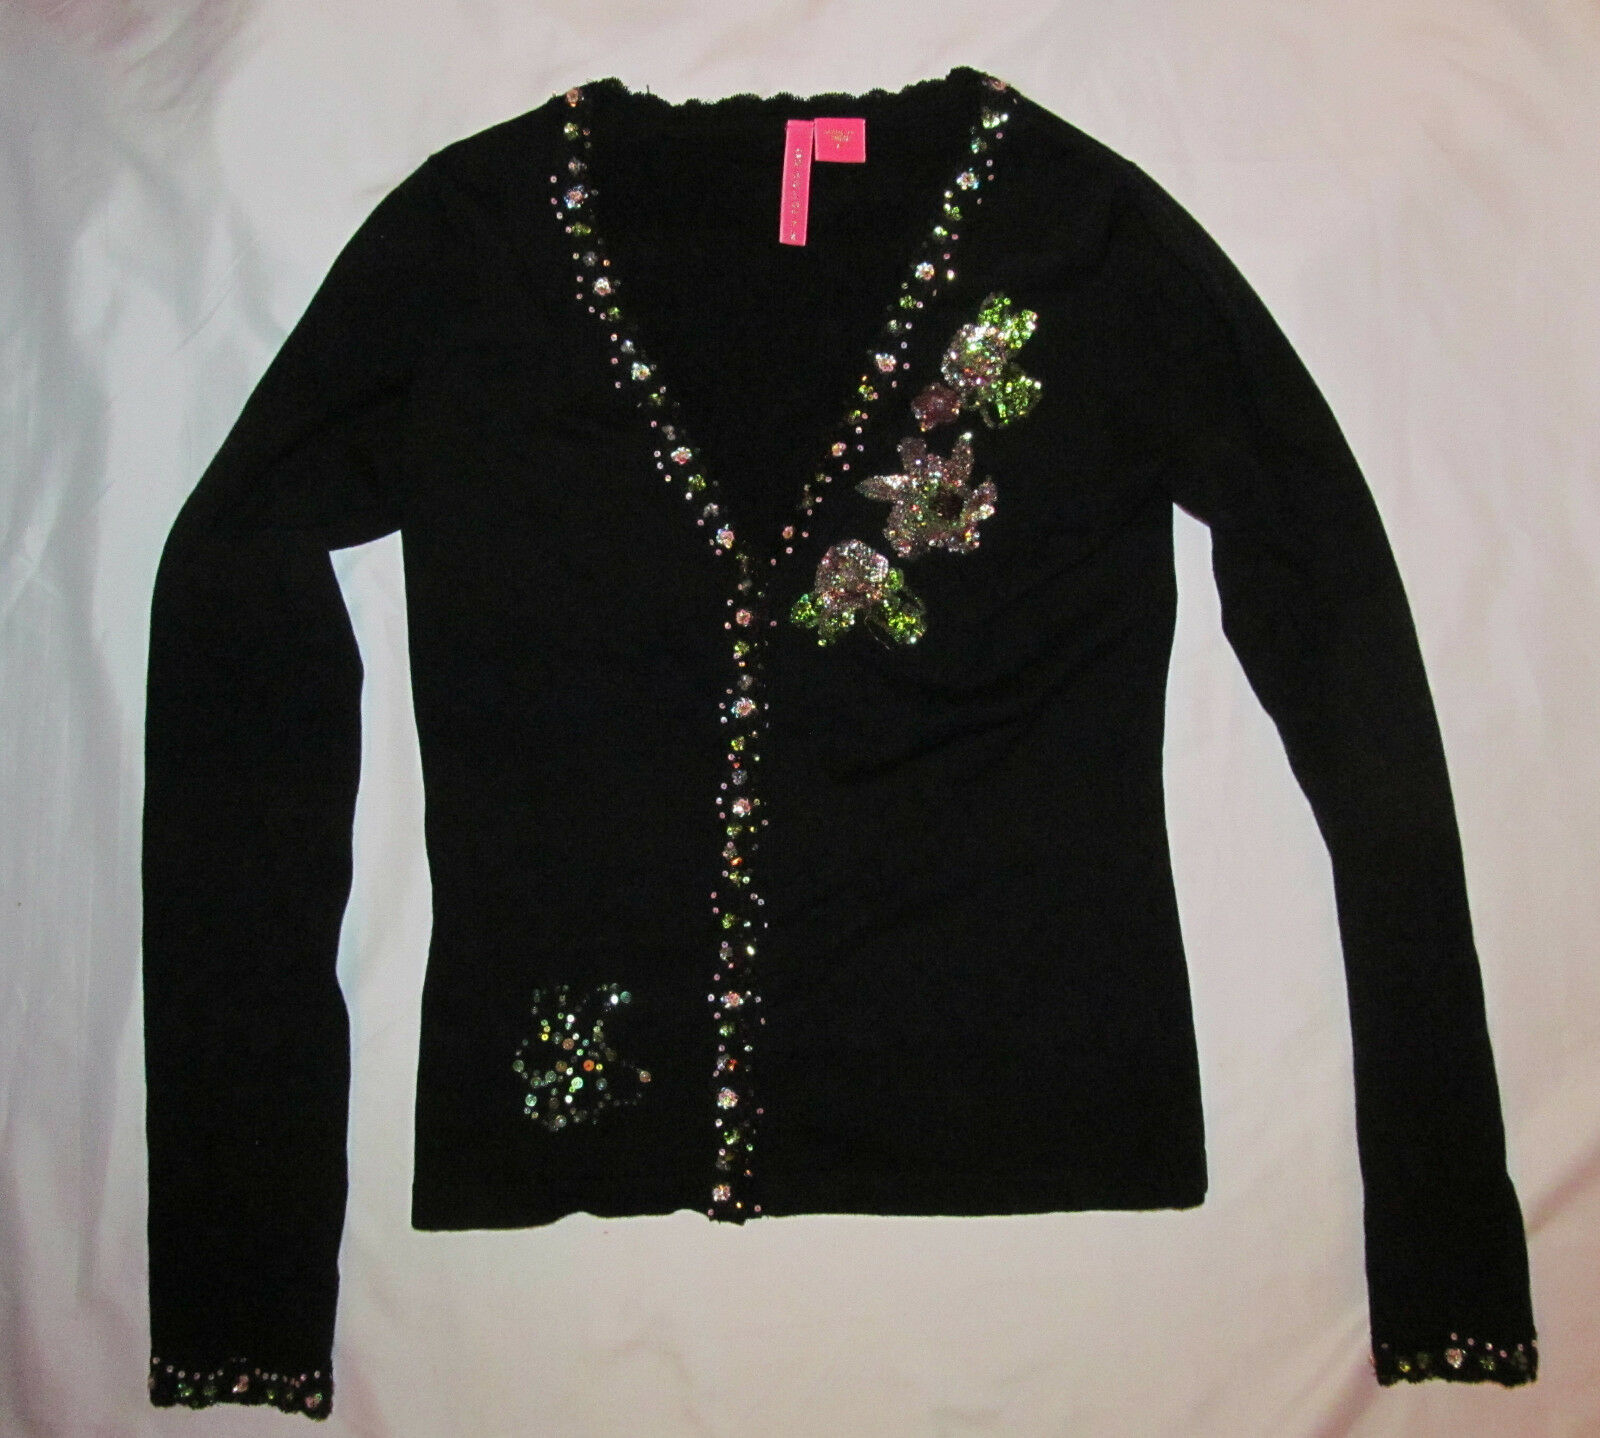 CHARLOITTE TARANTOLA silk button down sequined embroidered floral cardigan top M